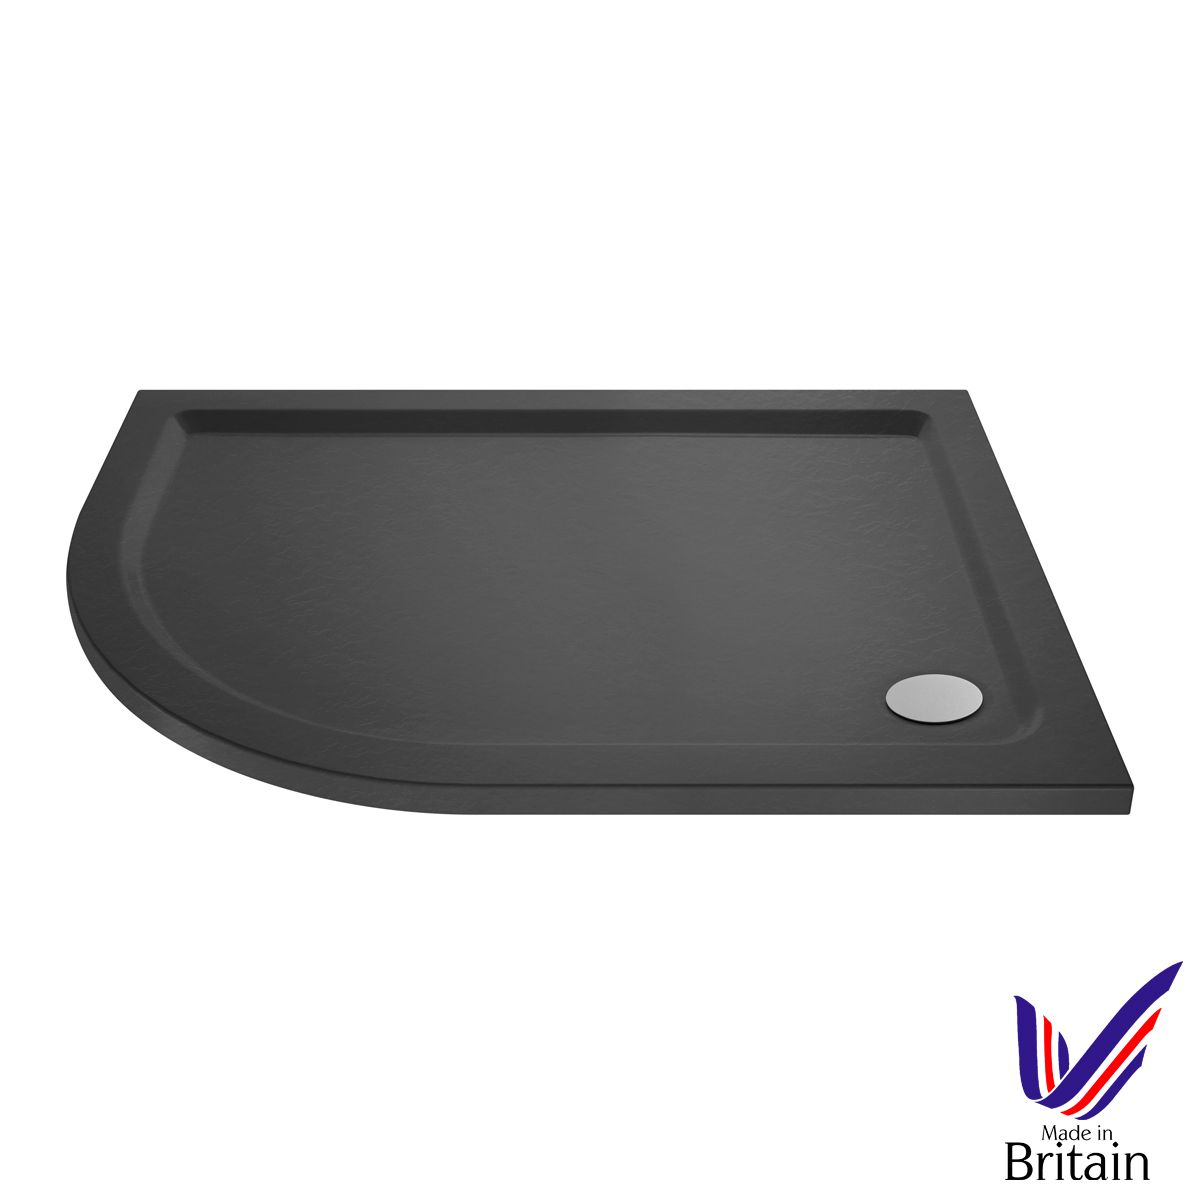 900 x 760 Shower Tray Slate Grey Offset Quadrant Low Profile Left Hand by Pearlstone